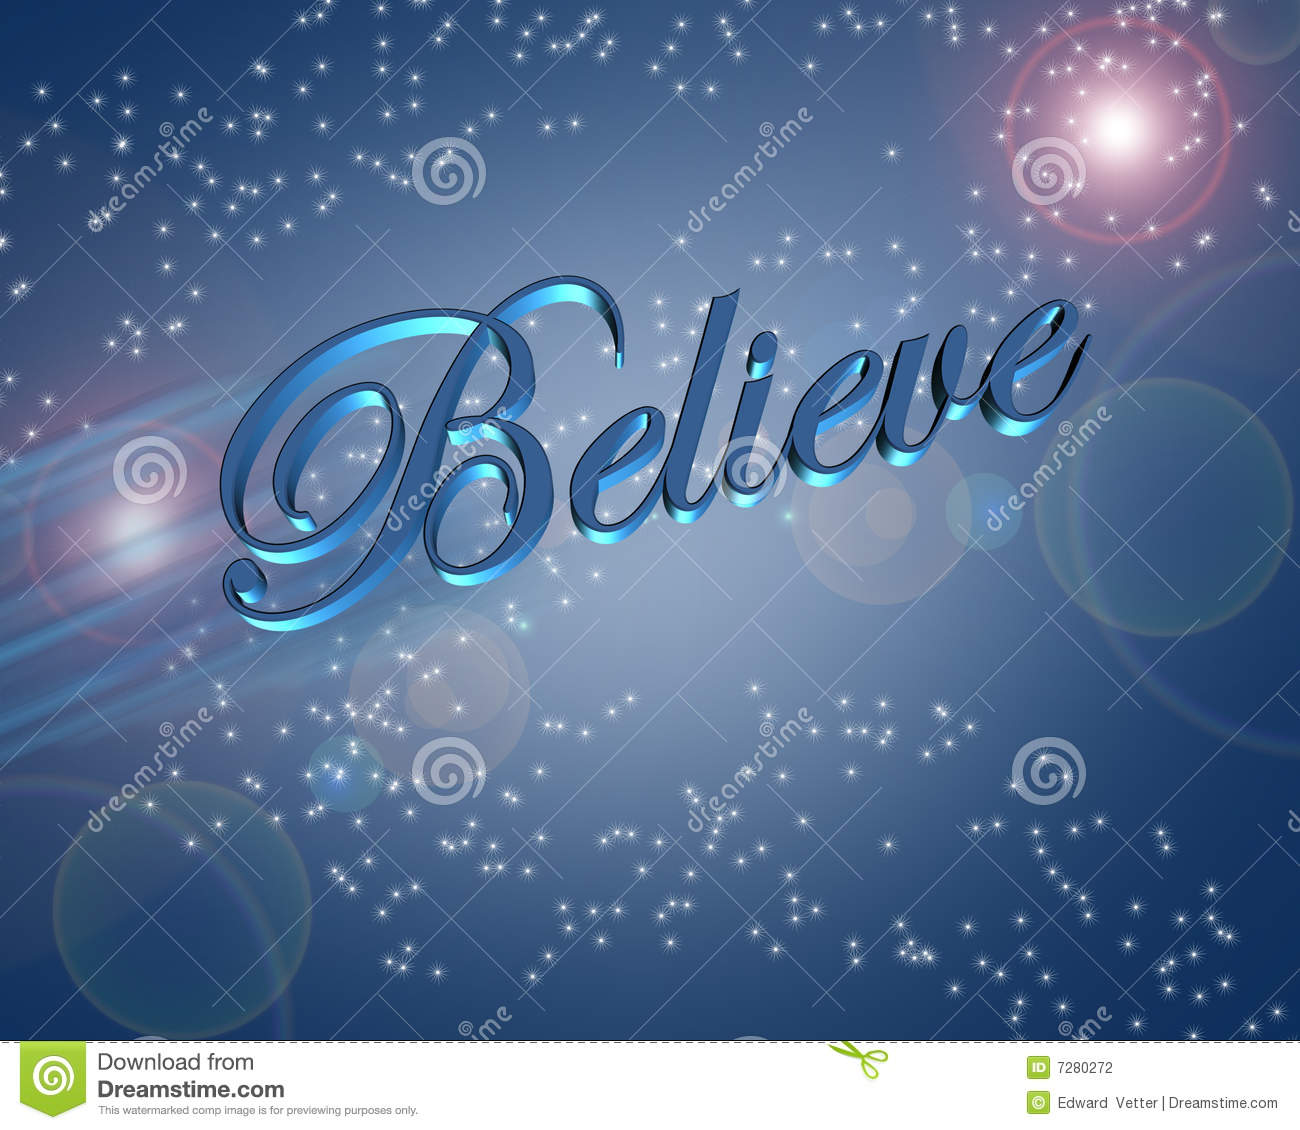 Dream Wallpaper Quotes Believe In Miracles Illustration Stock Illustration